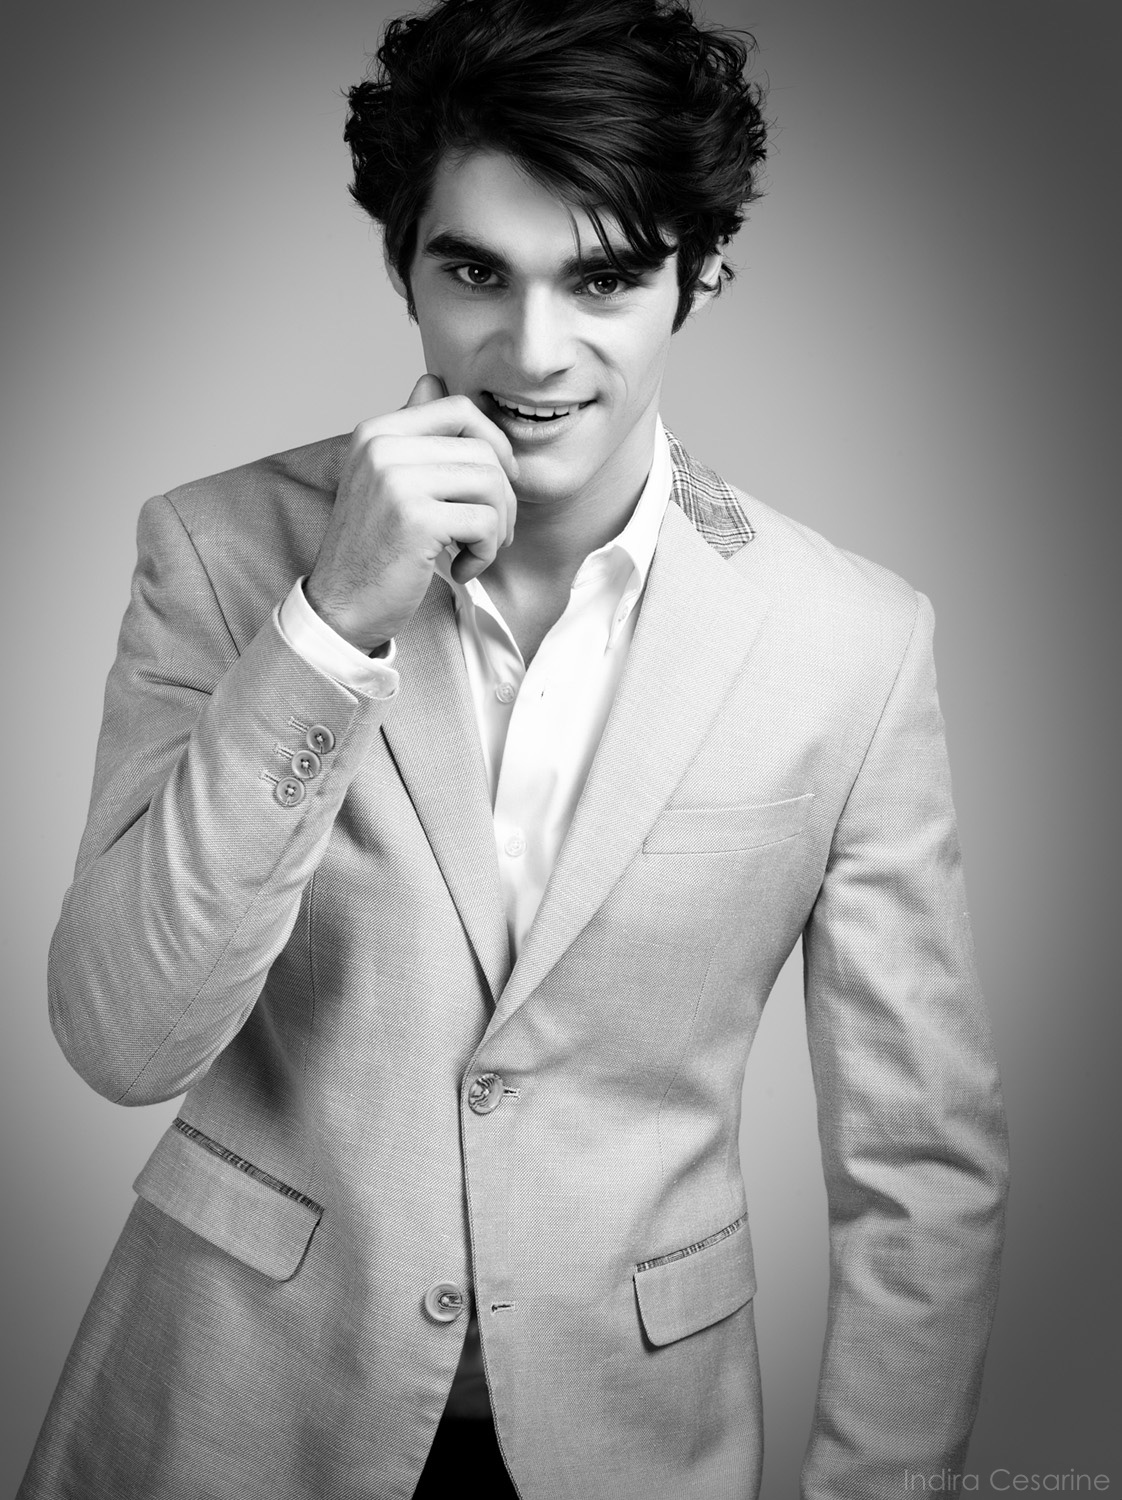 RJ-Mitte-Photography-by-Indira-Cesarine-013.jpg